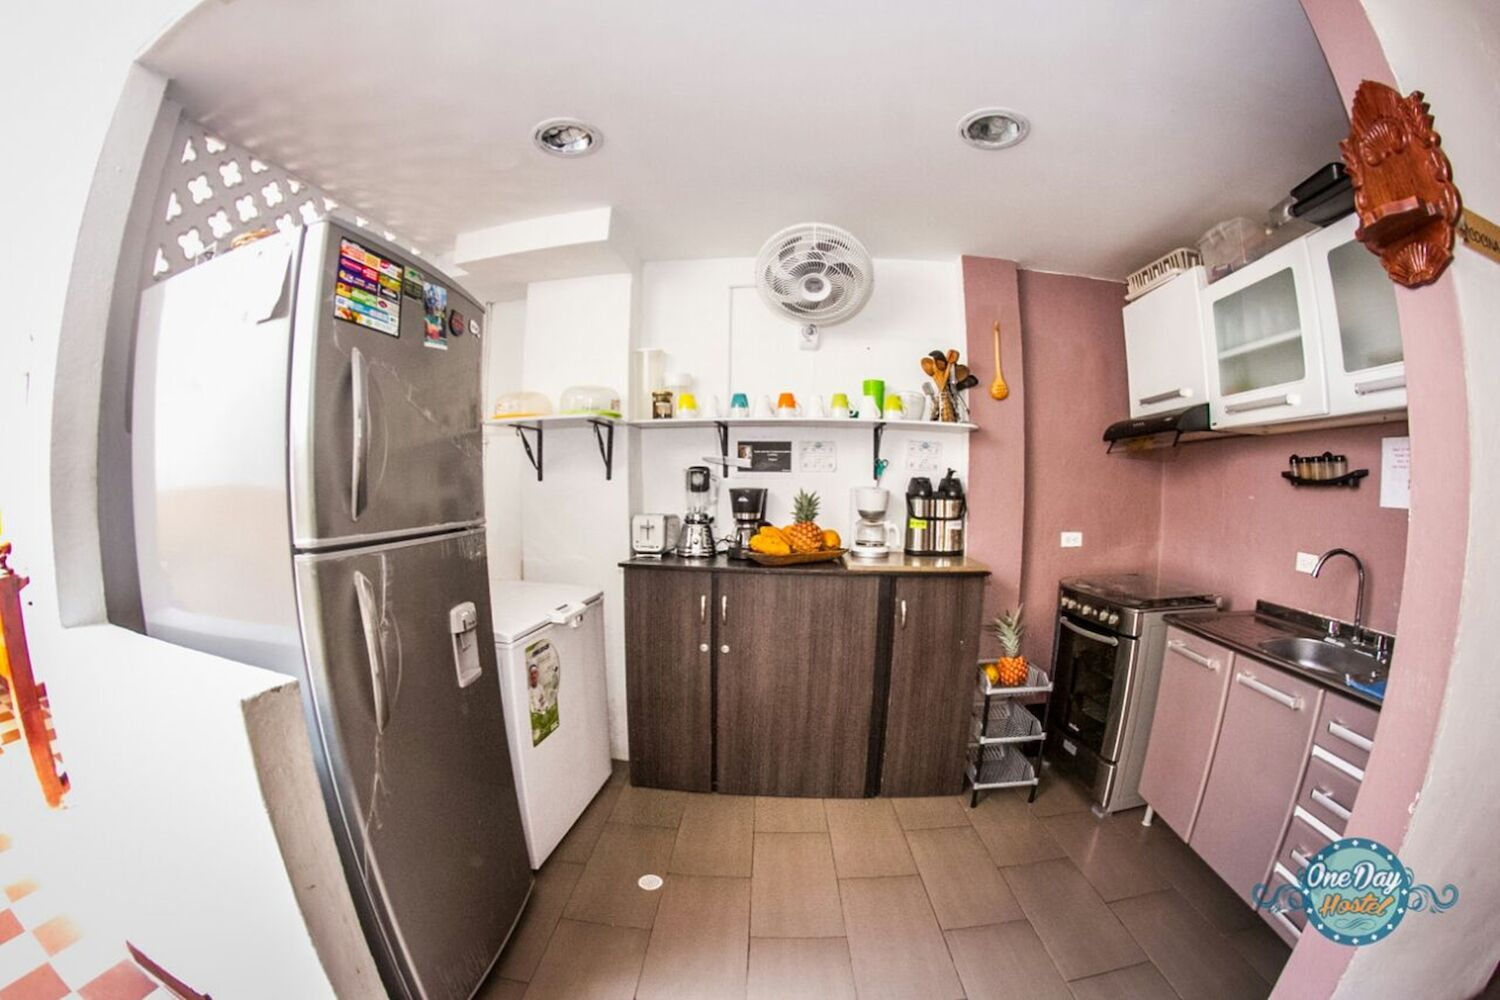 One Day Hostel In Cartagena De Indias